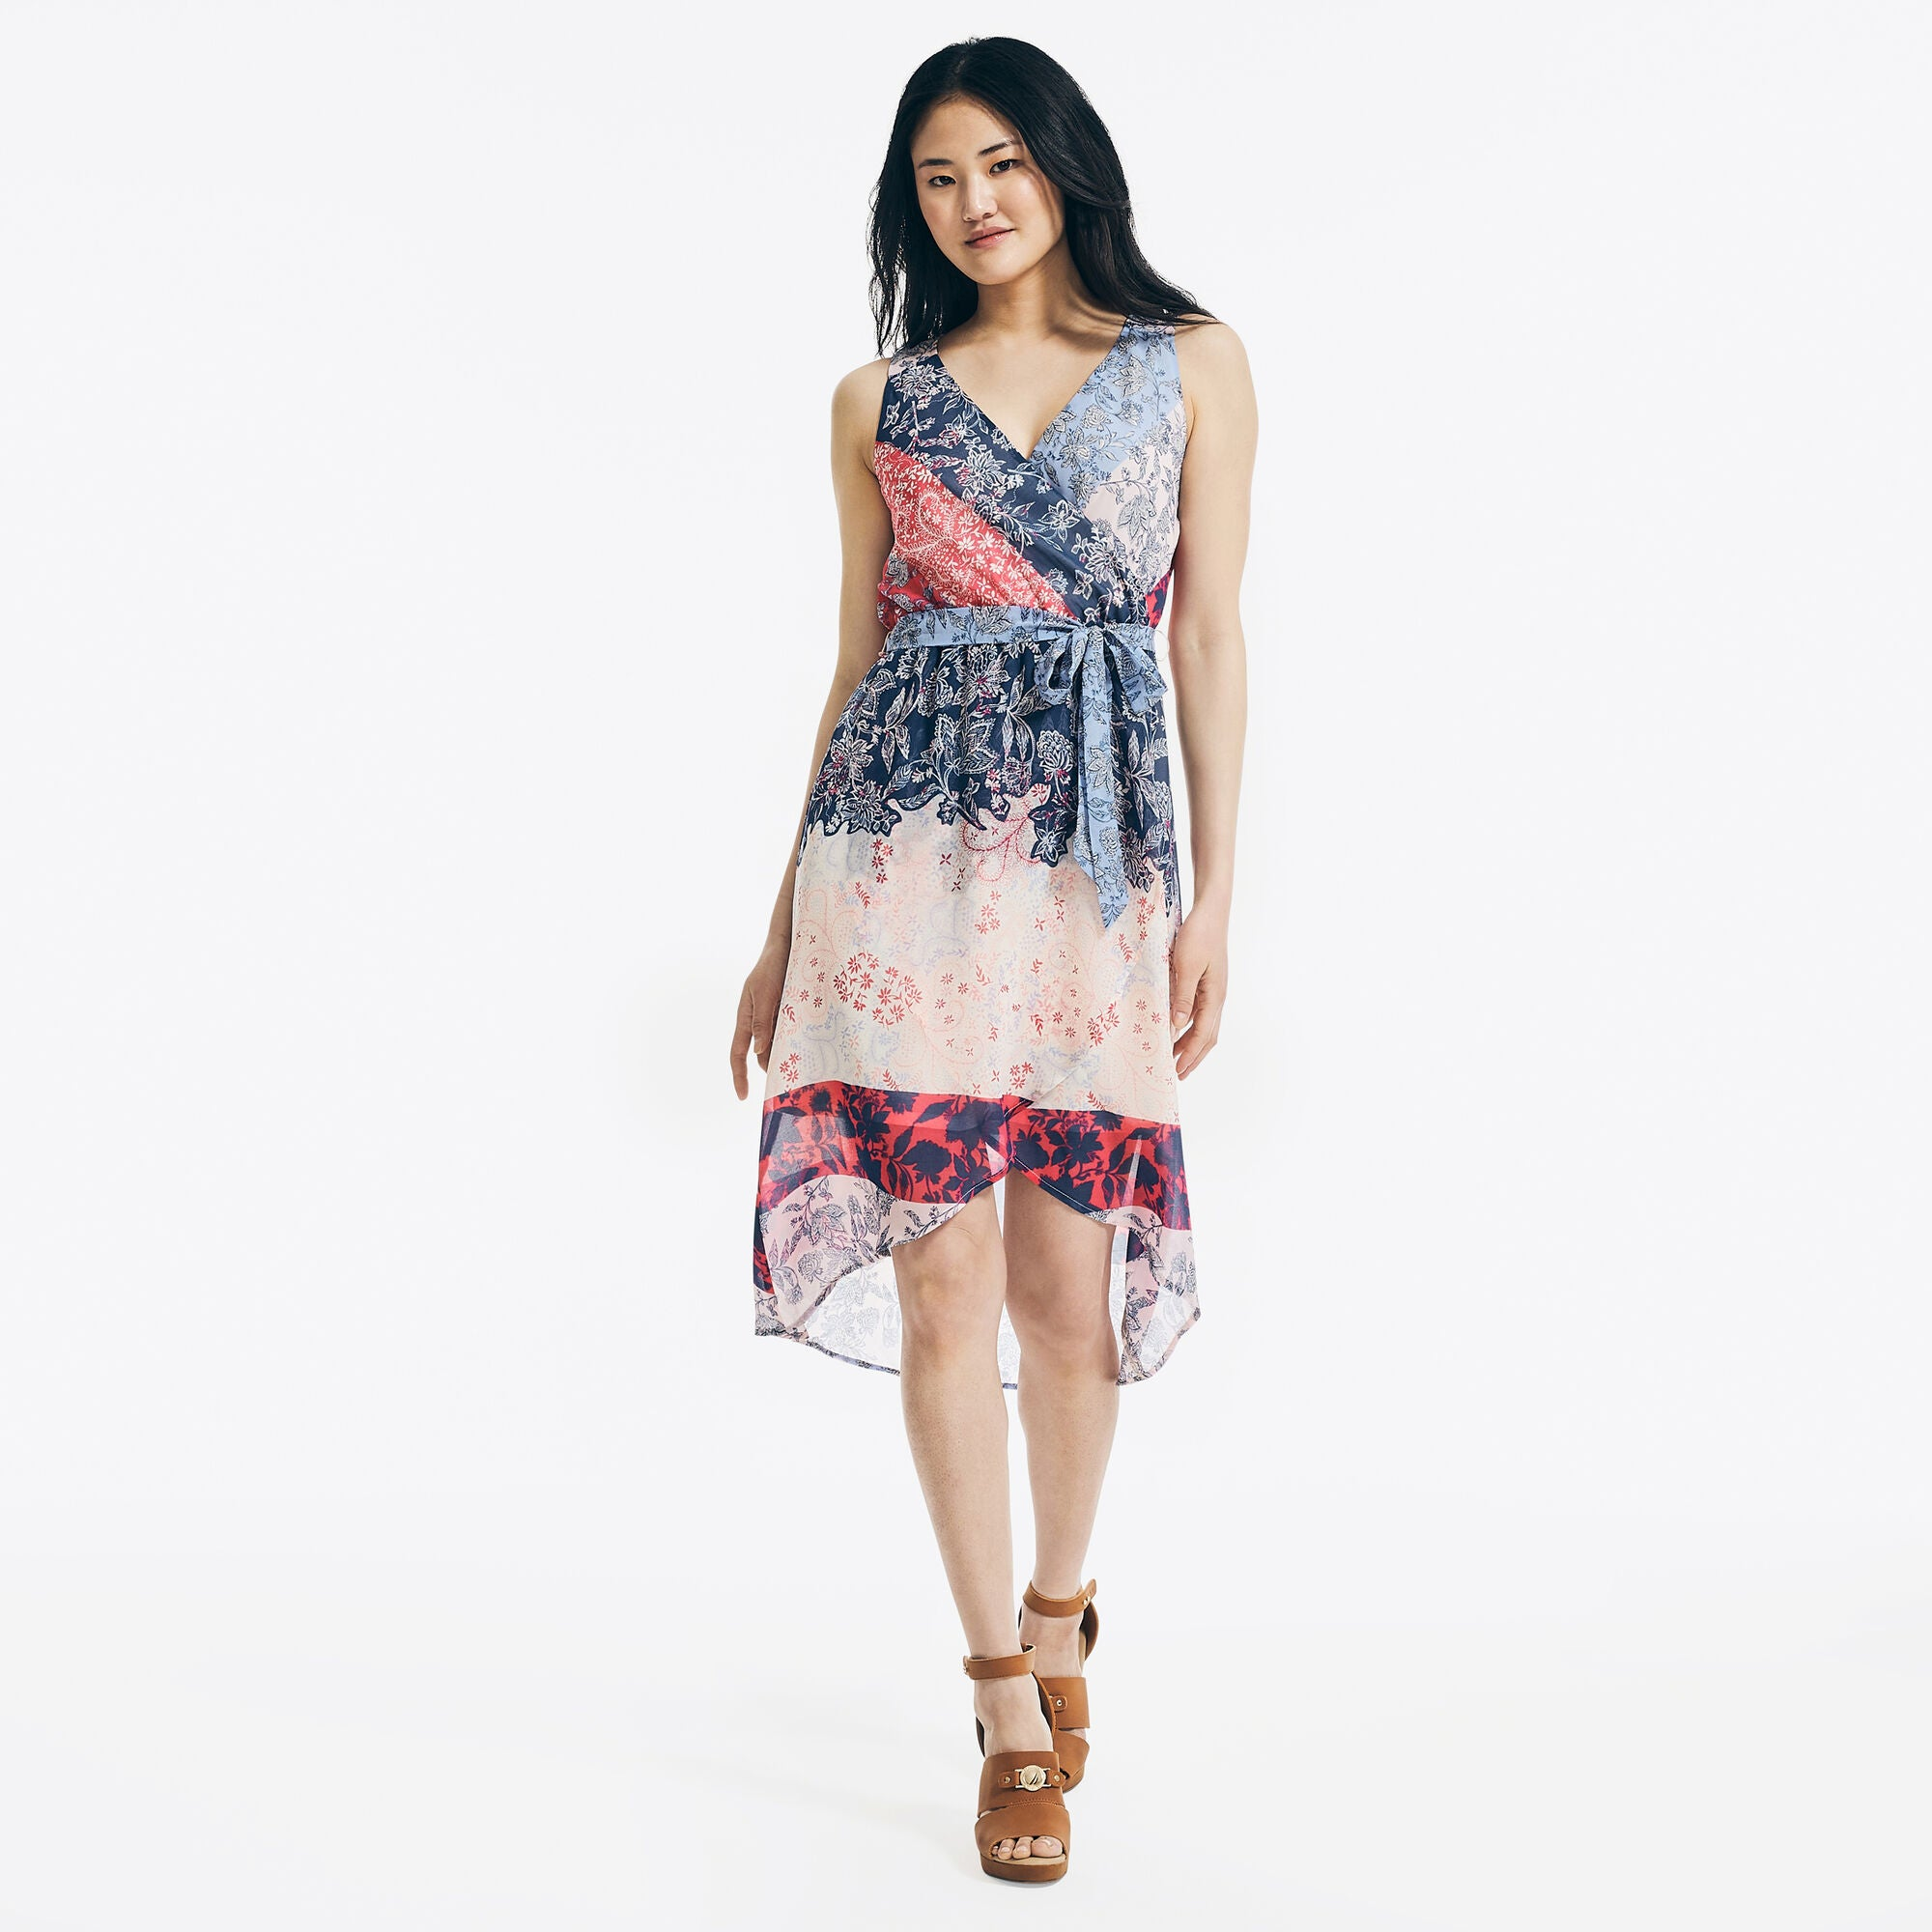 model in sleeveless wrap dress with sheer high-low hem that hits around the knees and has blue, red, and cream patterns